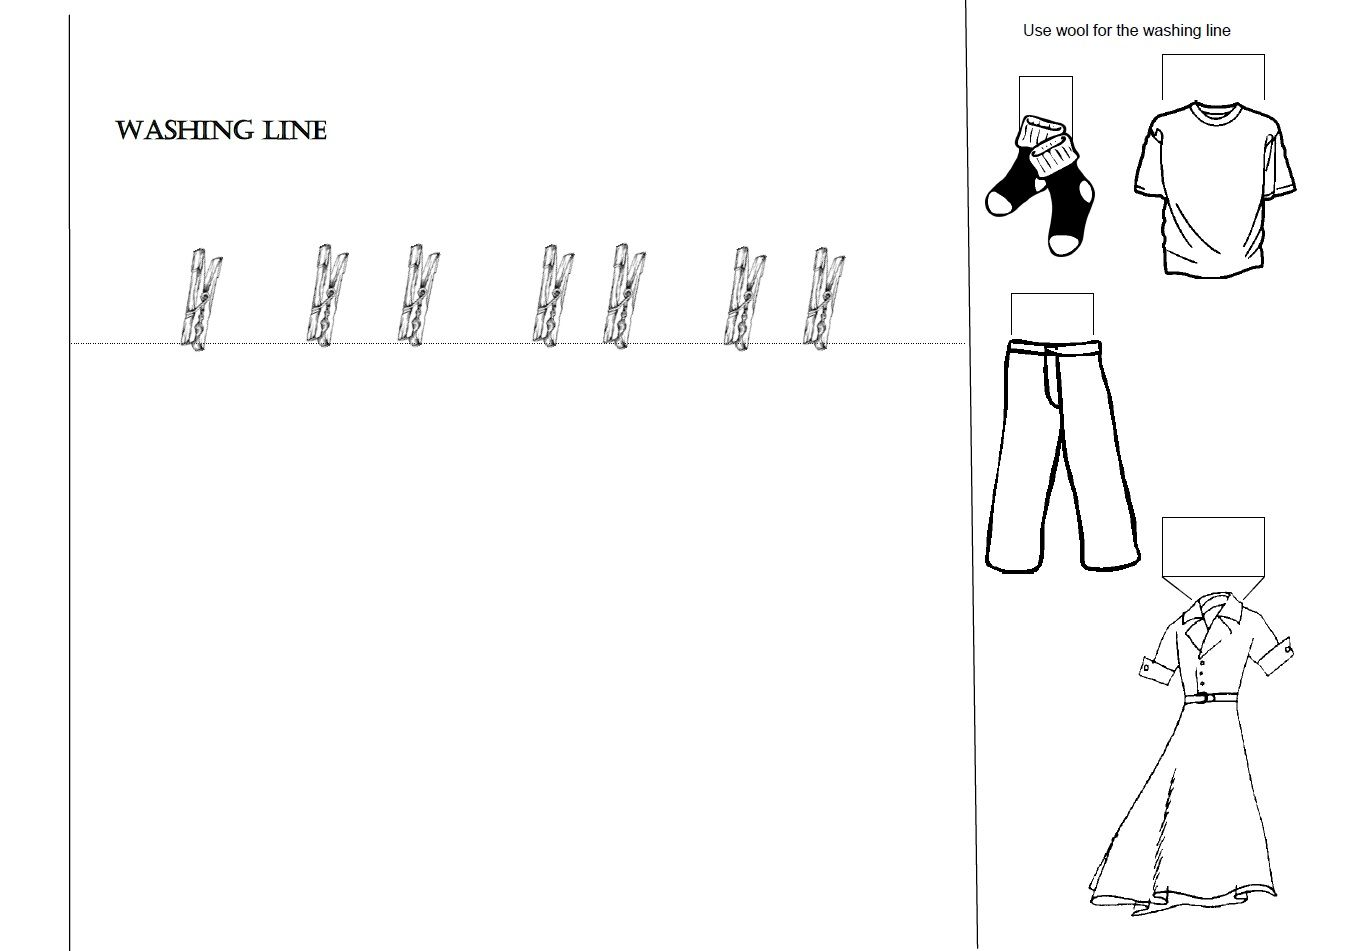 Clothing- Washing line theme (use wool for the line)